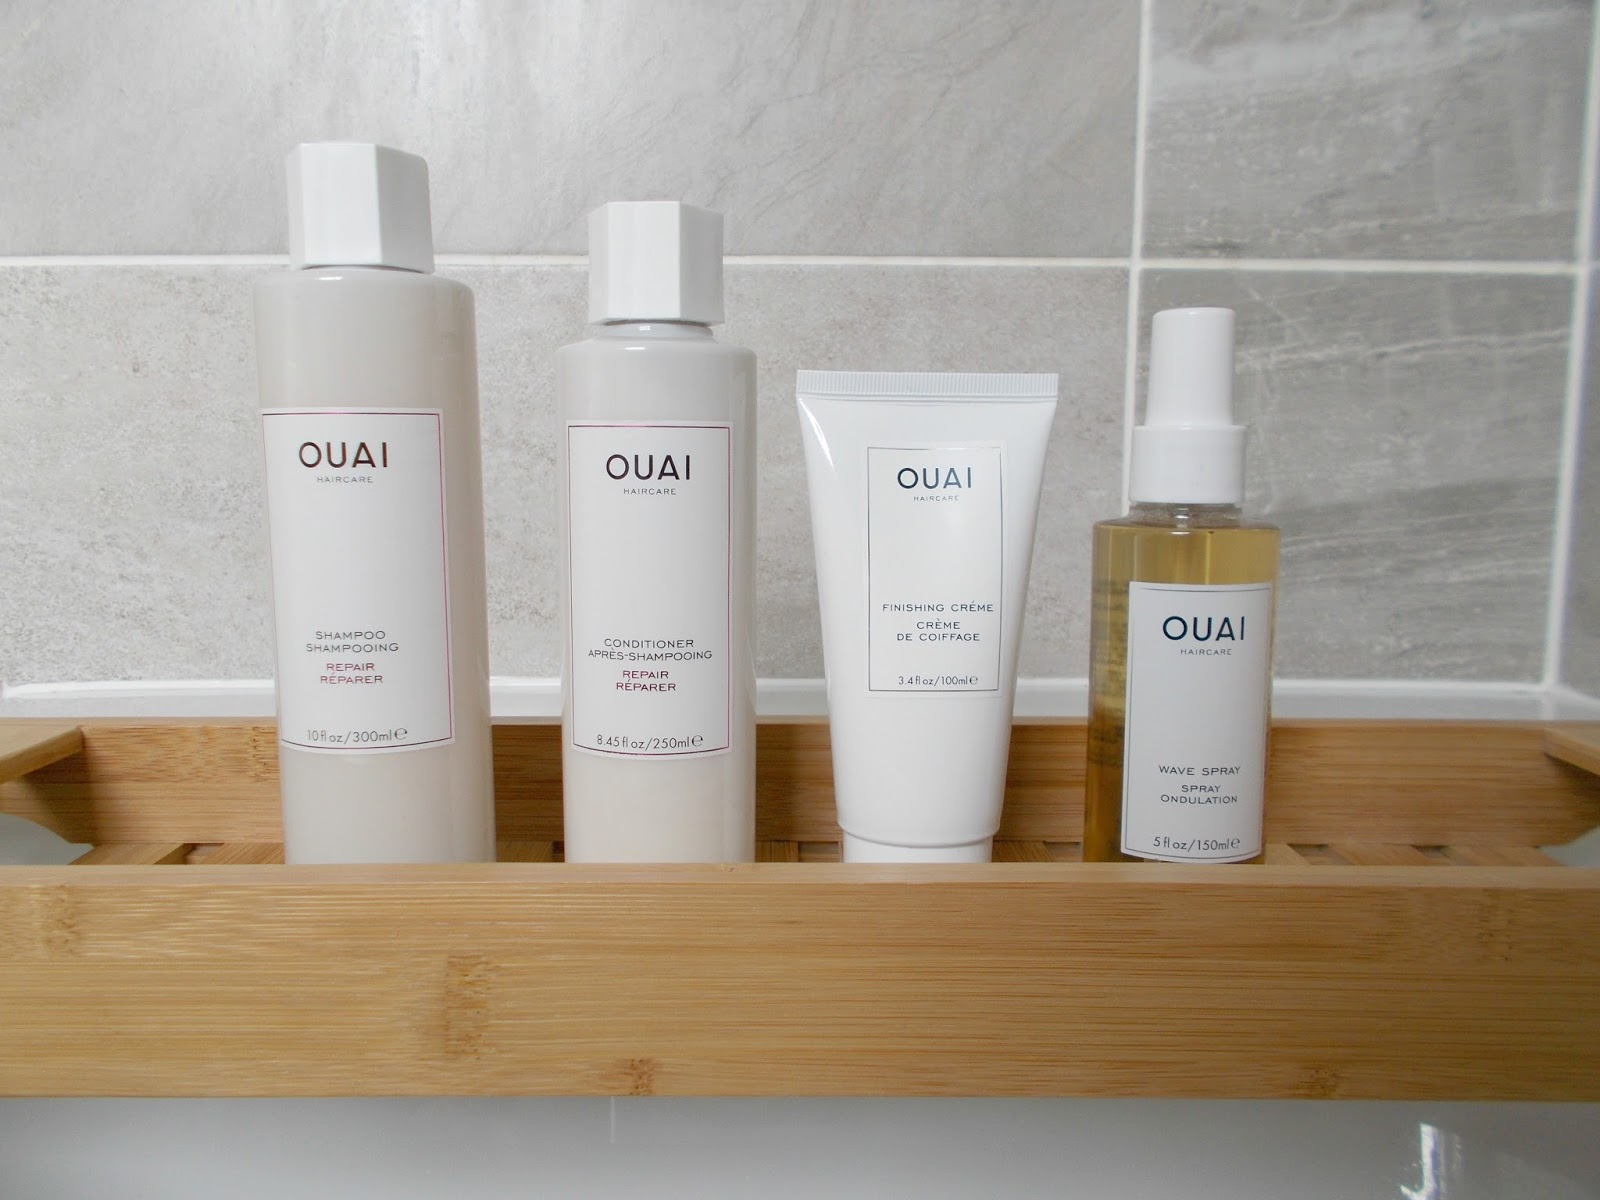 OUAI haircare review repair shampoo conditioner finishing creme wave spray